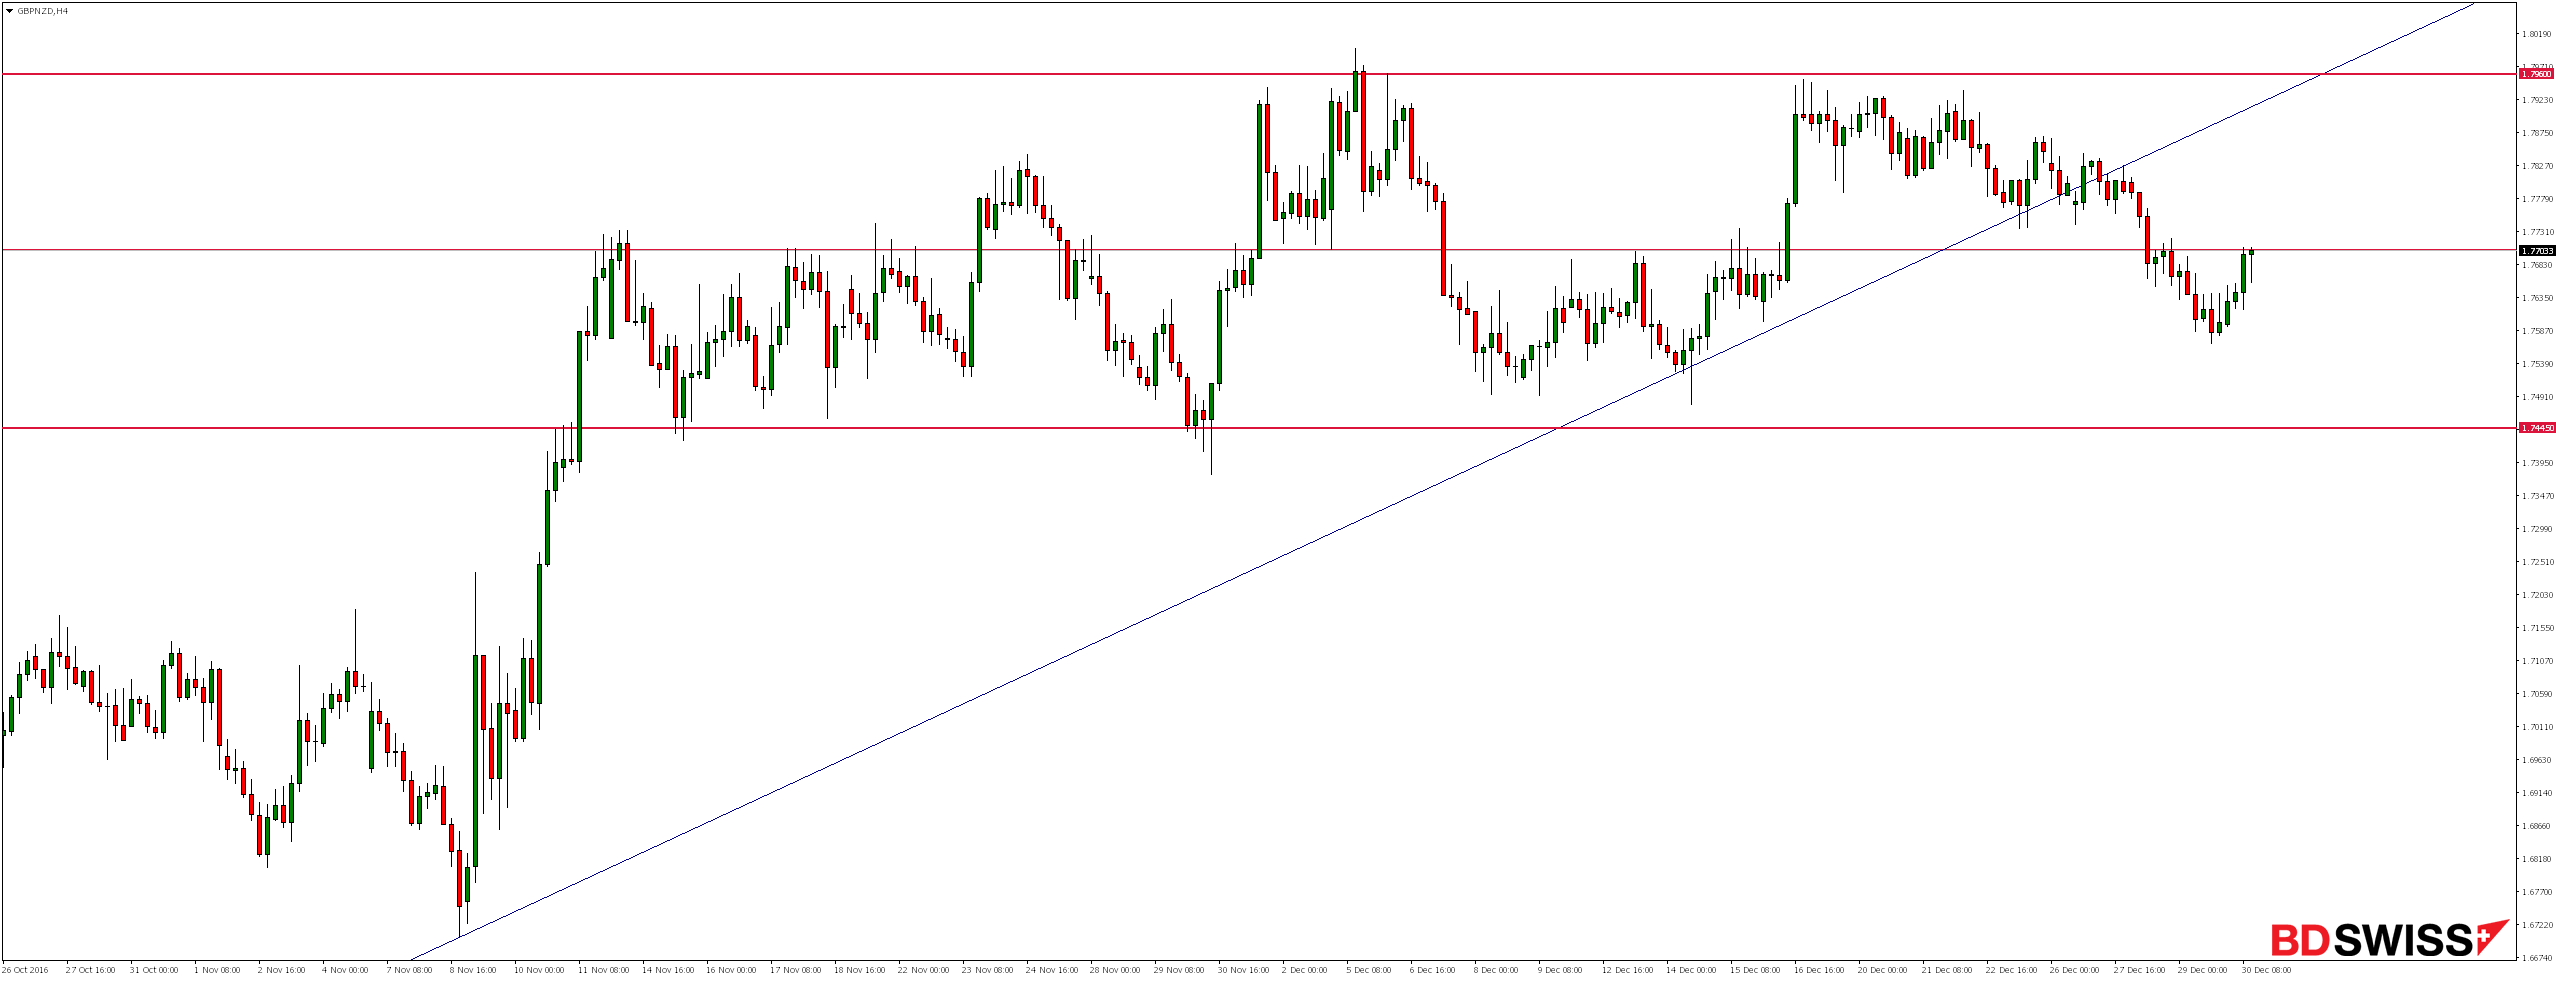 GBPNZD H4